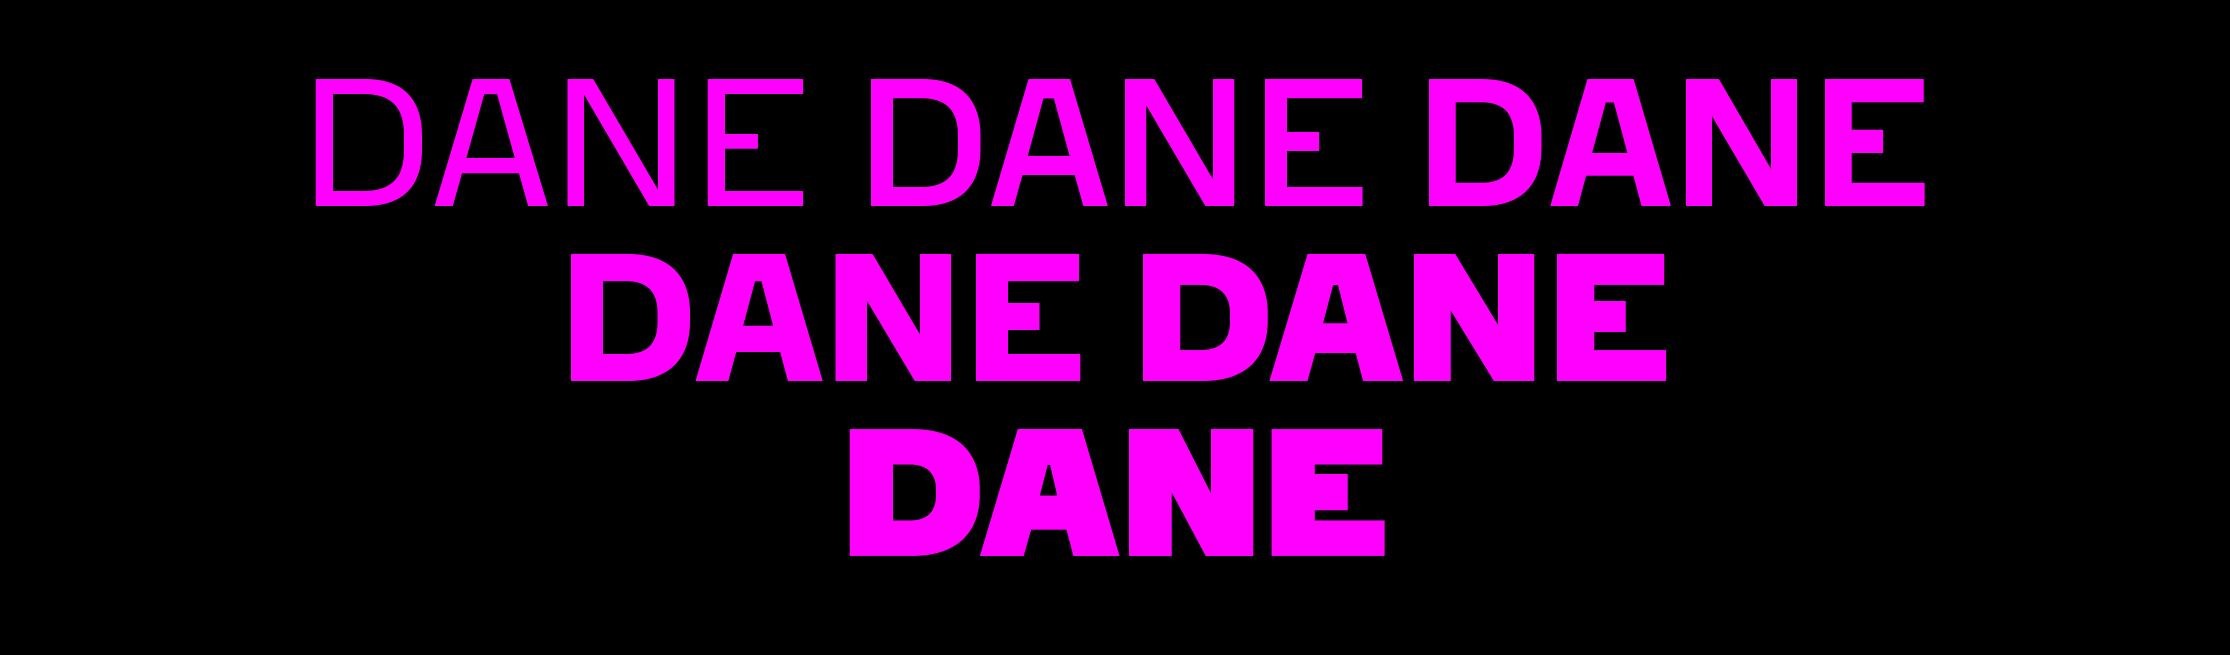 Dane sample